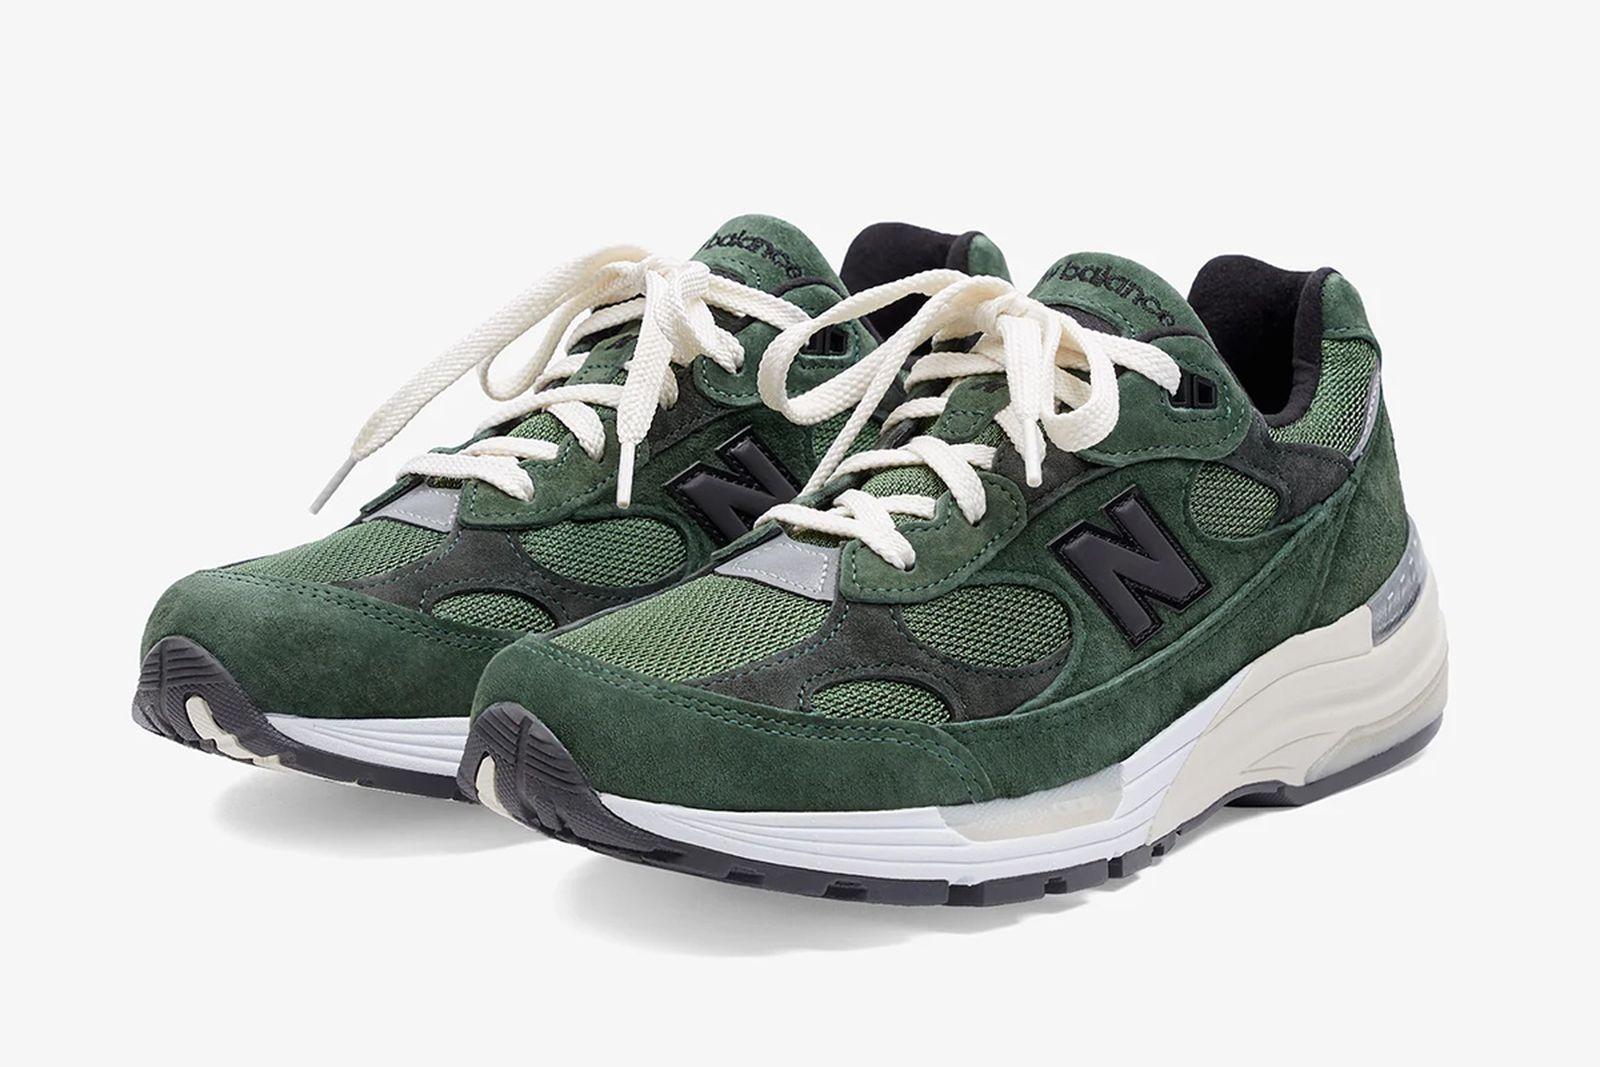 jjjjound-new-balance-992-release-date-price-04